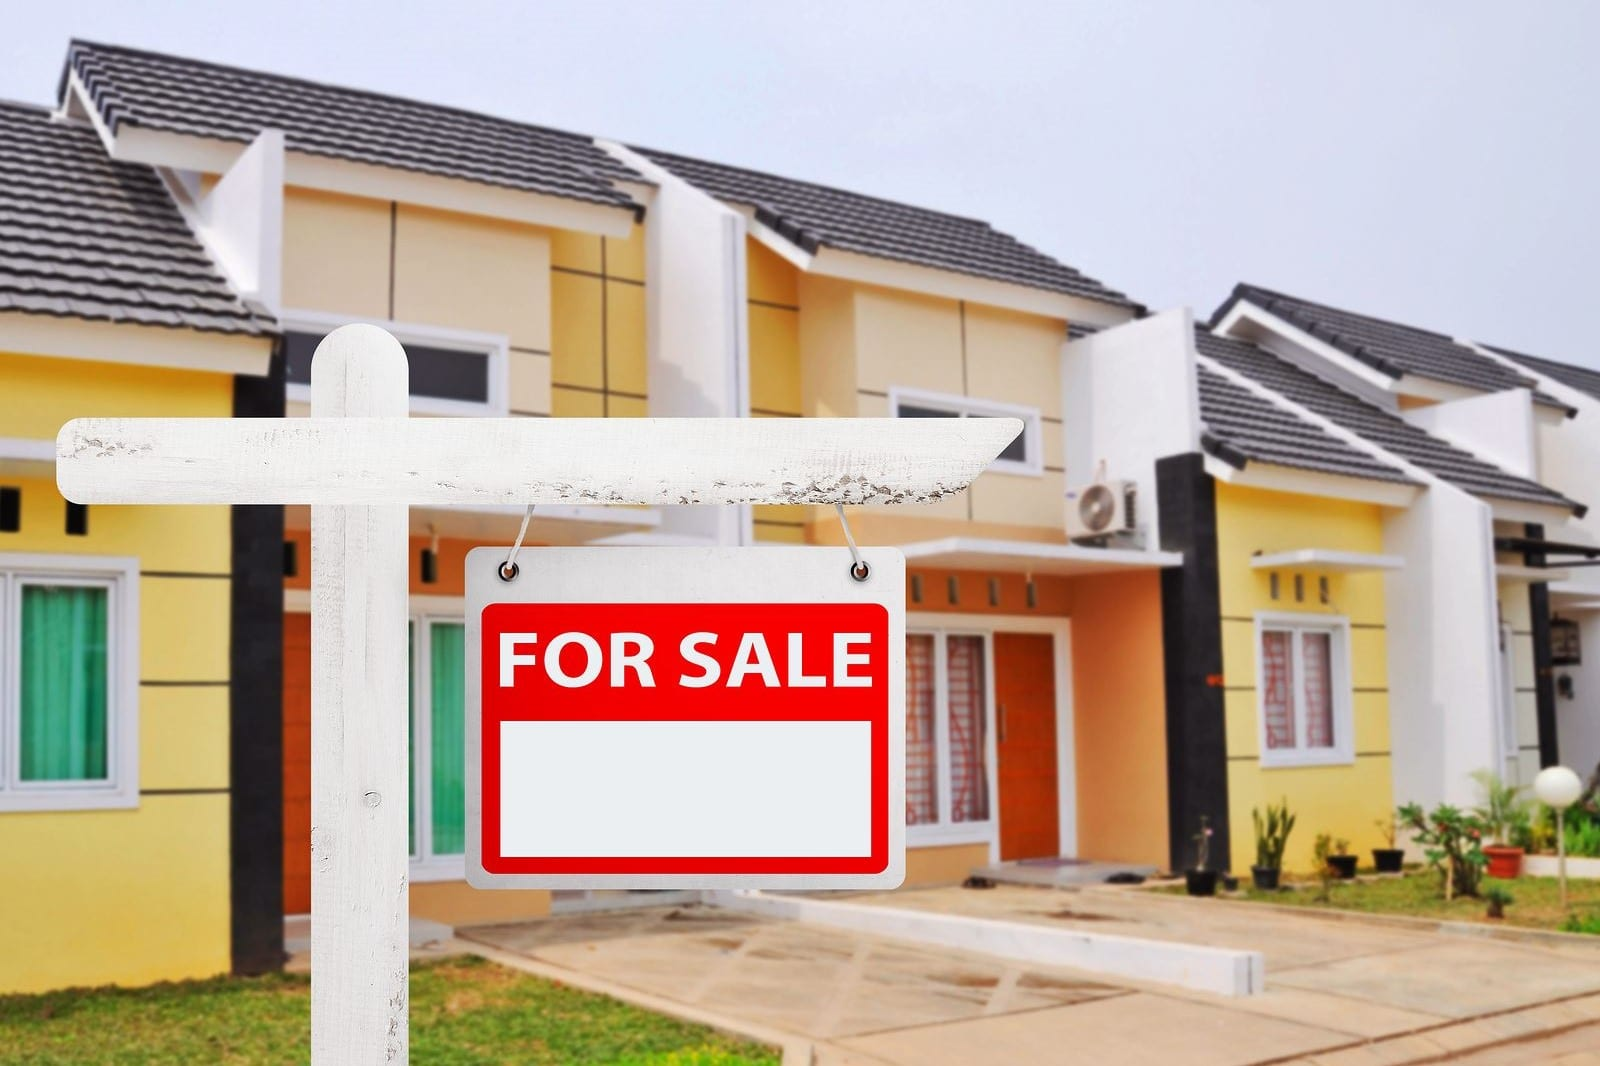 Find investment properties for sale tsp vesting code 3